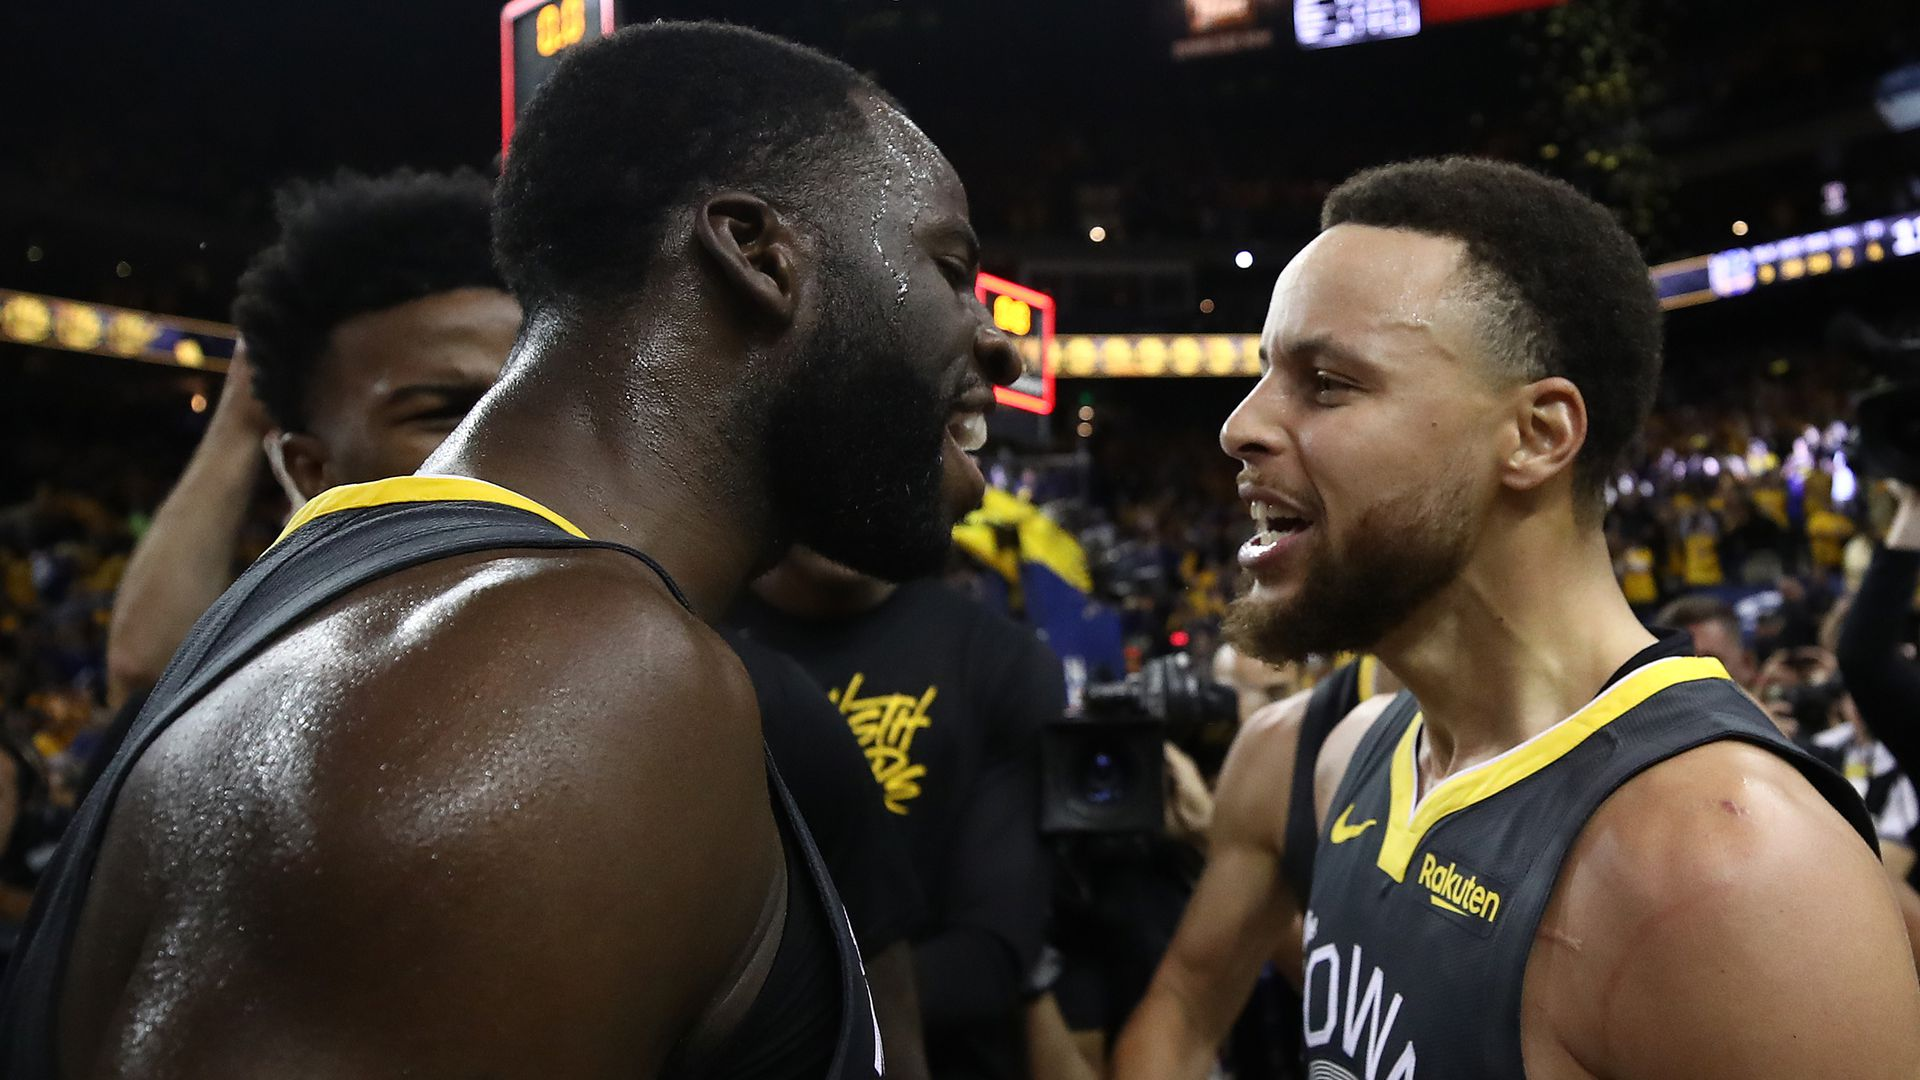 Steph Curry and Draymond Green after the Warriors win